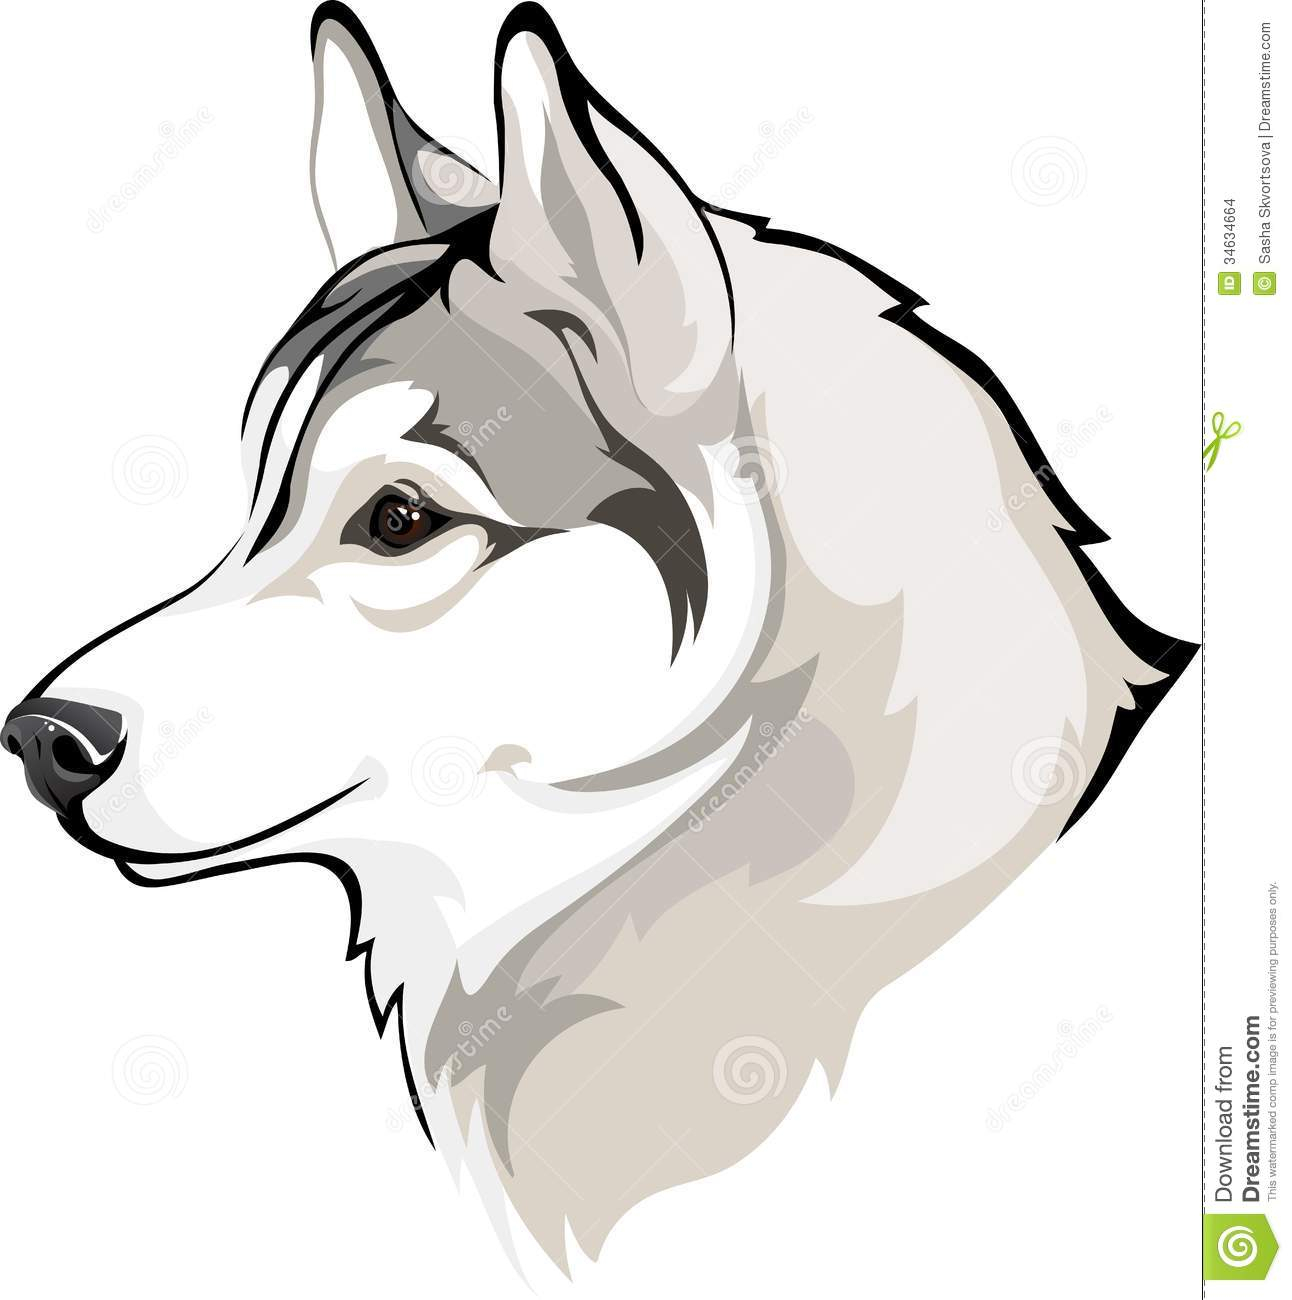 husky cartoon drawing at getdrawings com free for personal use